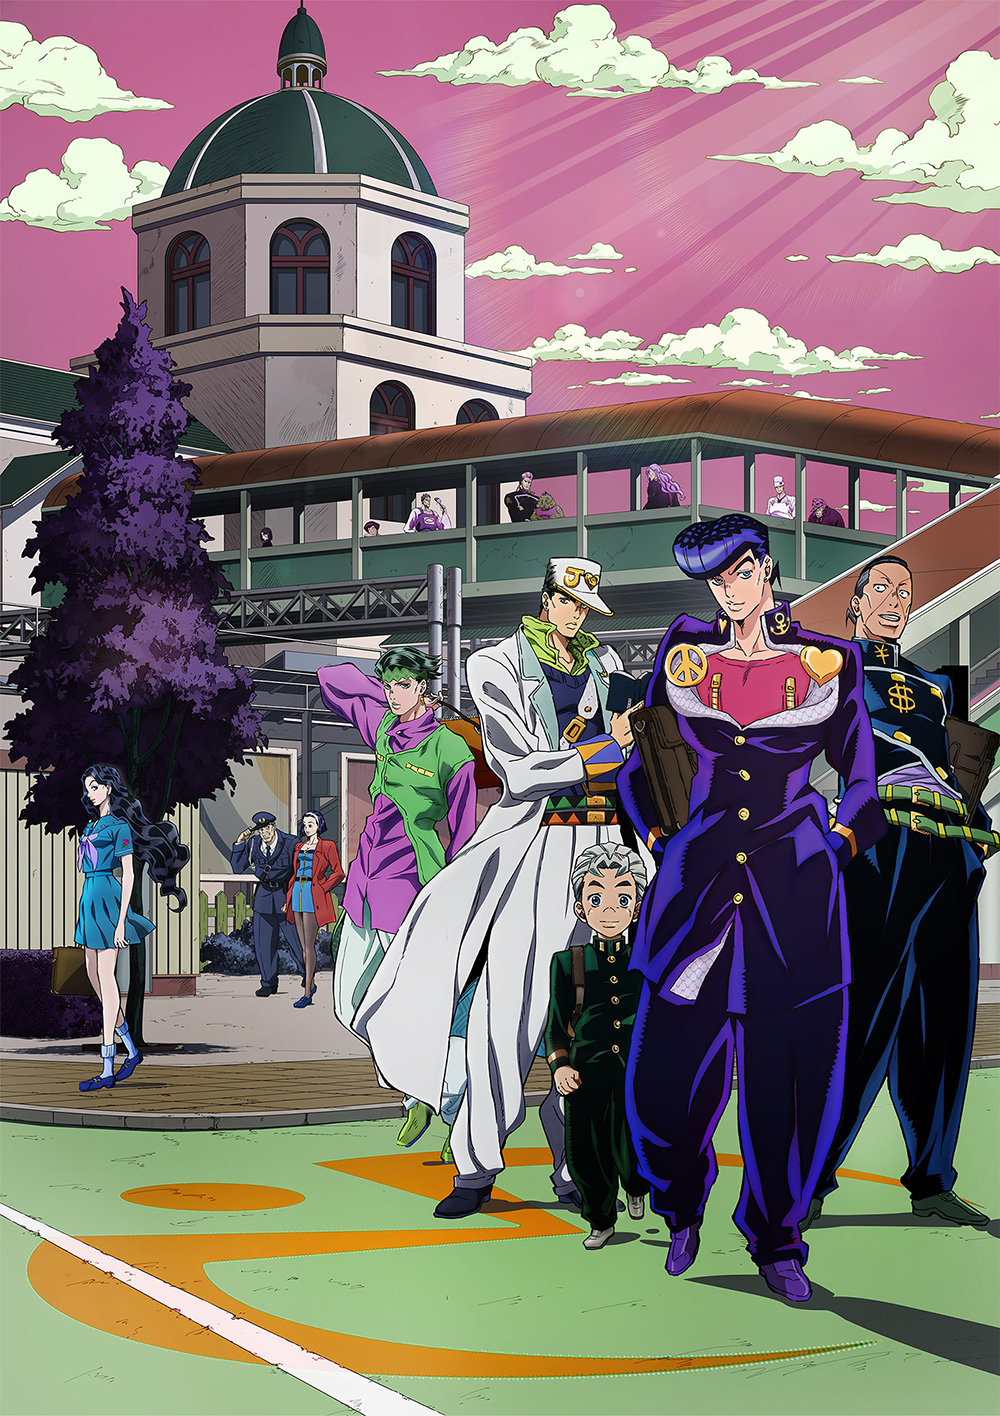 JoJos-Bizarre-Adventure Diamond-Is-Unbreakable-Visual-03